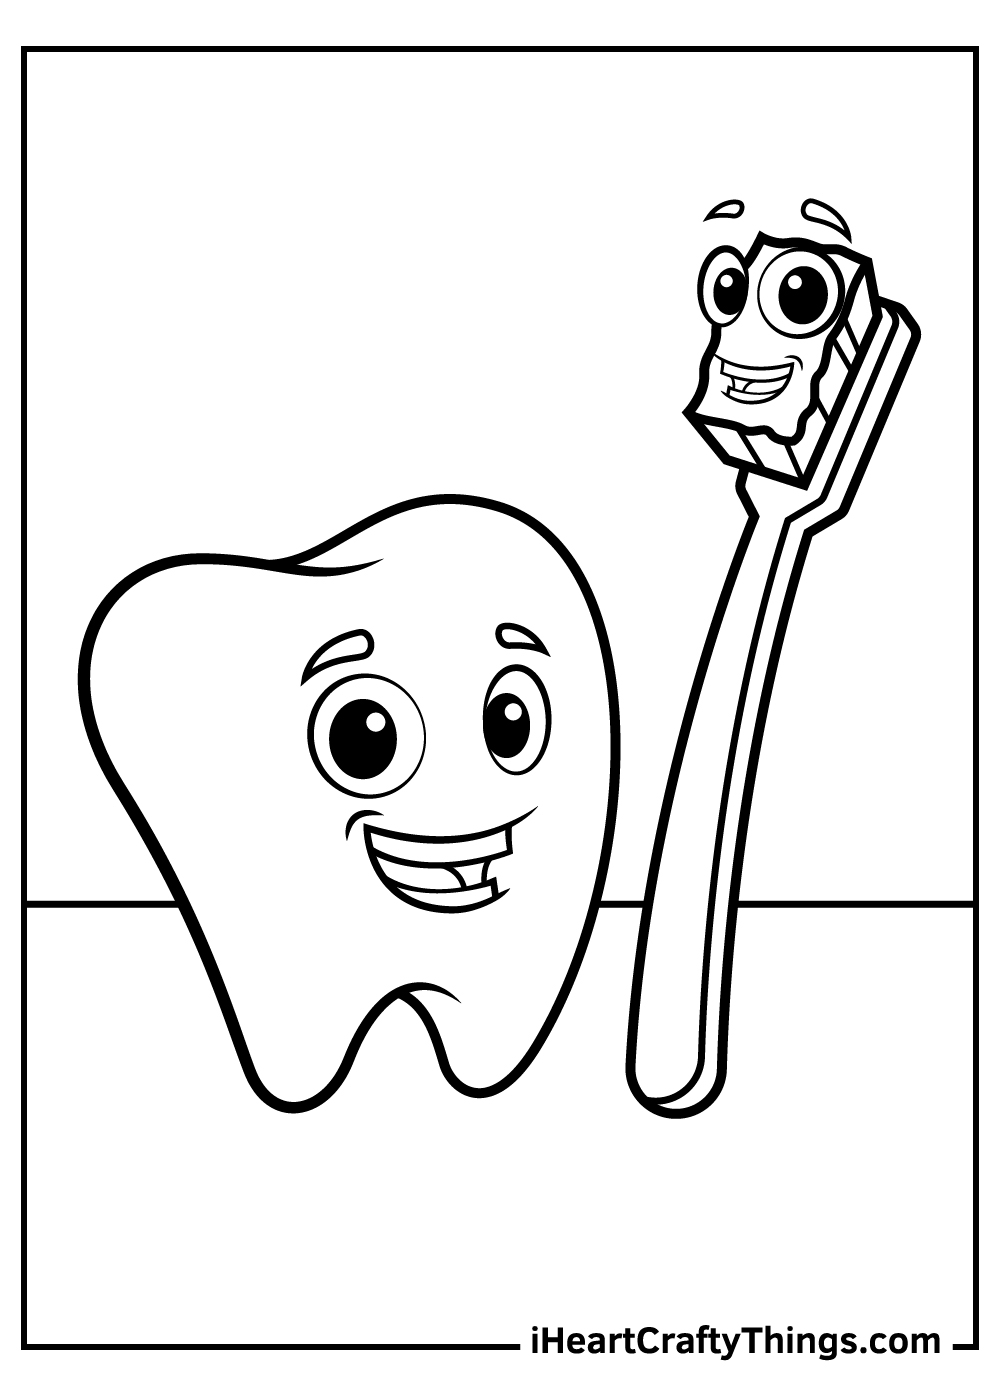 free printable tooth coloring pages